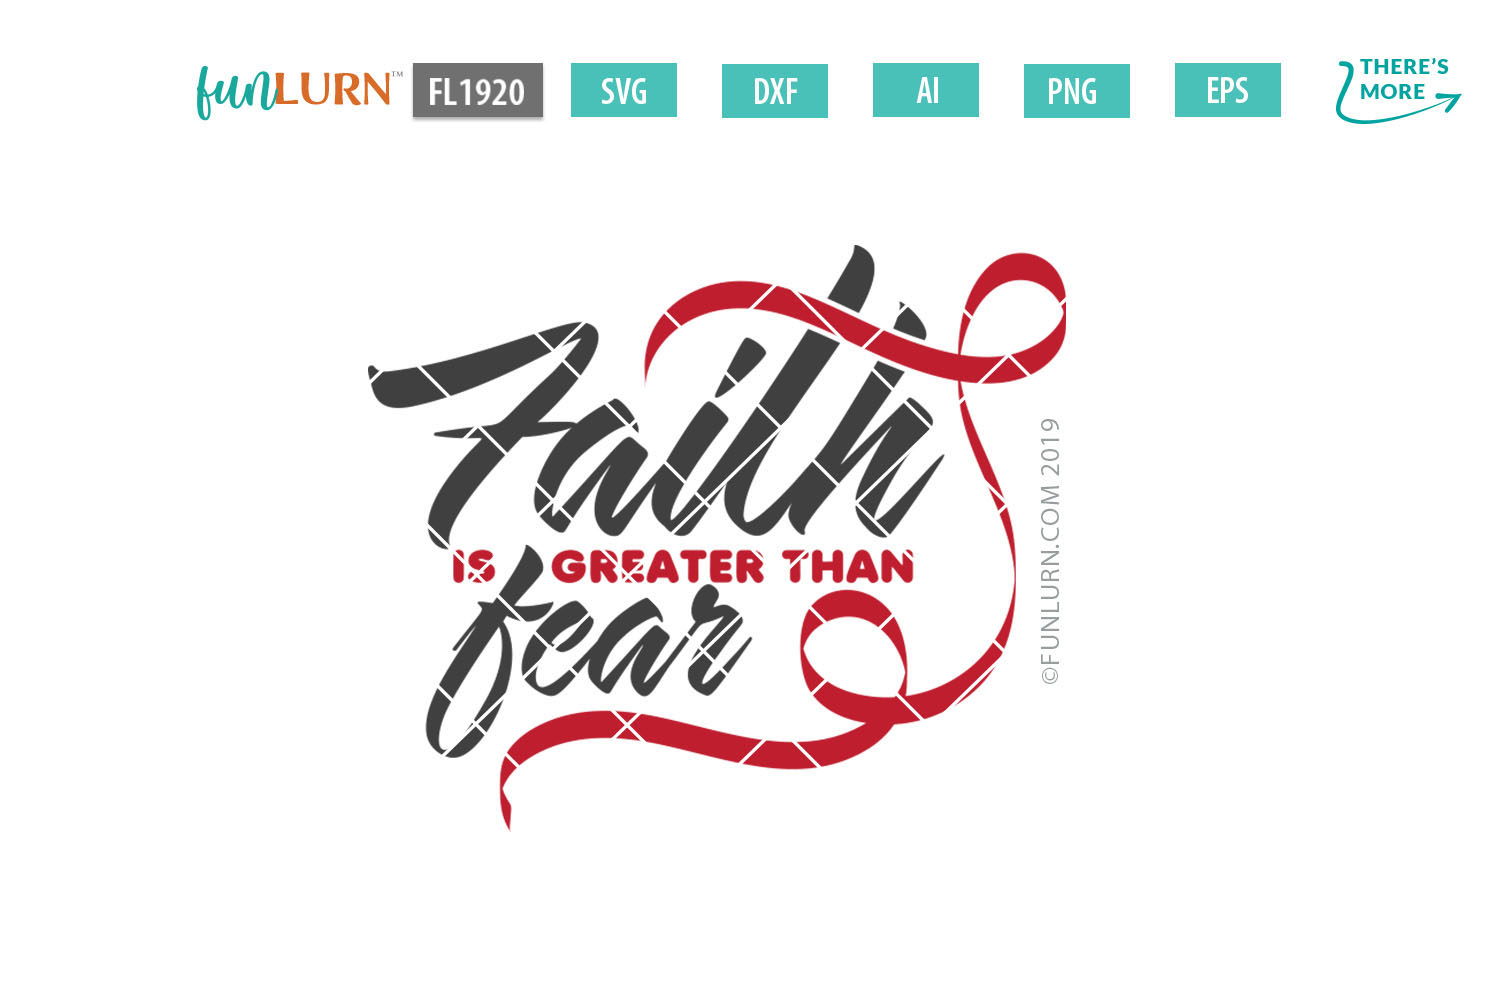 Faith is Greater Than Fear Red Ribbon SVG Cut File example image 2